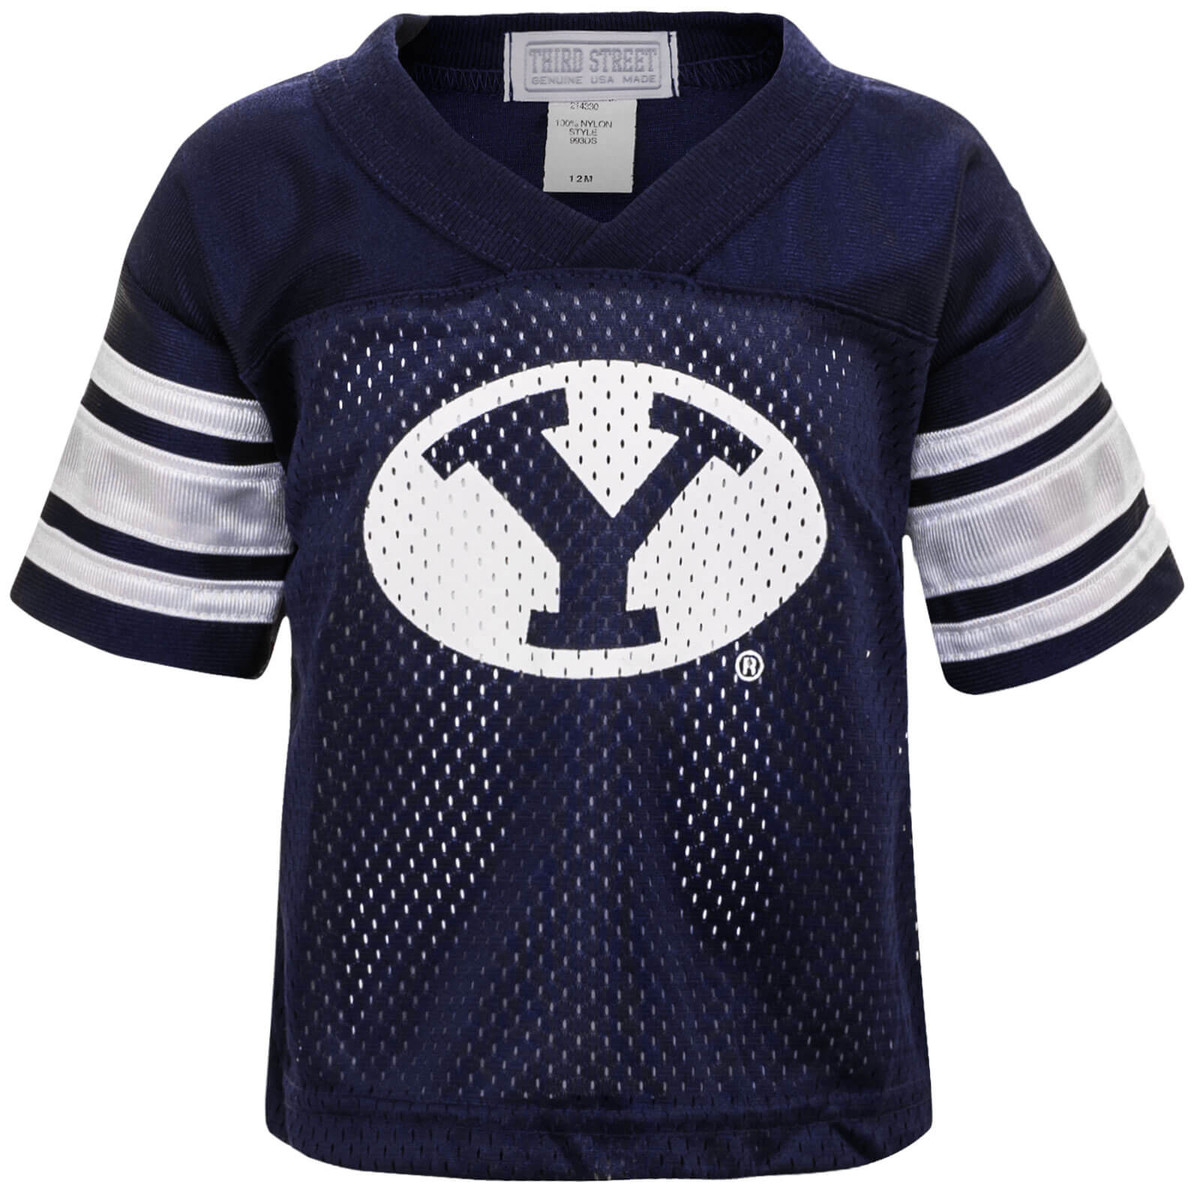 on sale e4489 2913a Infant Oval Y Replica BYU Football Jersey - Third Street